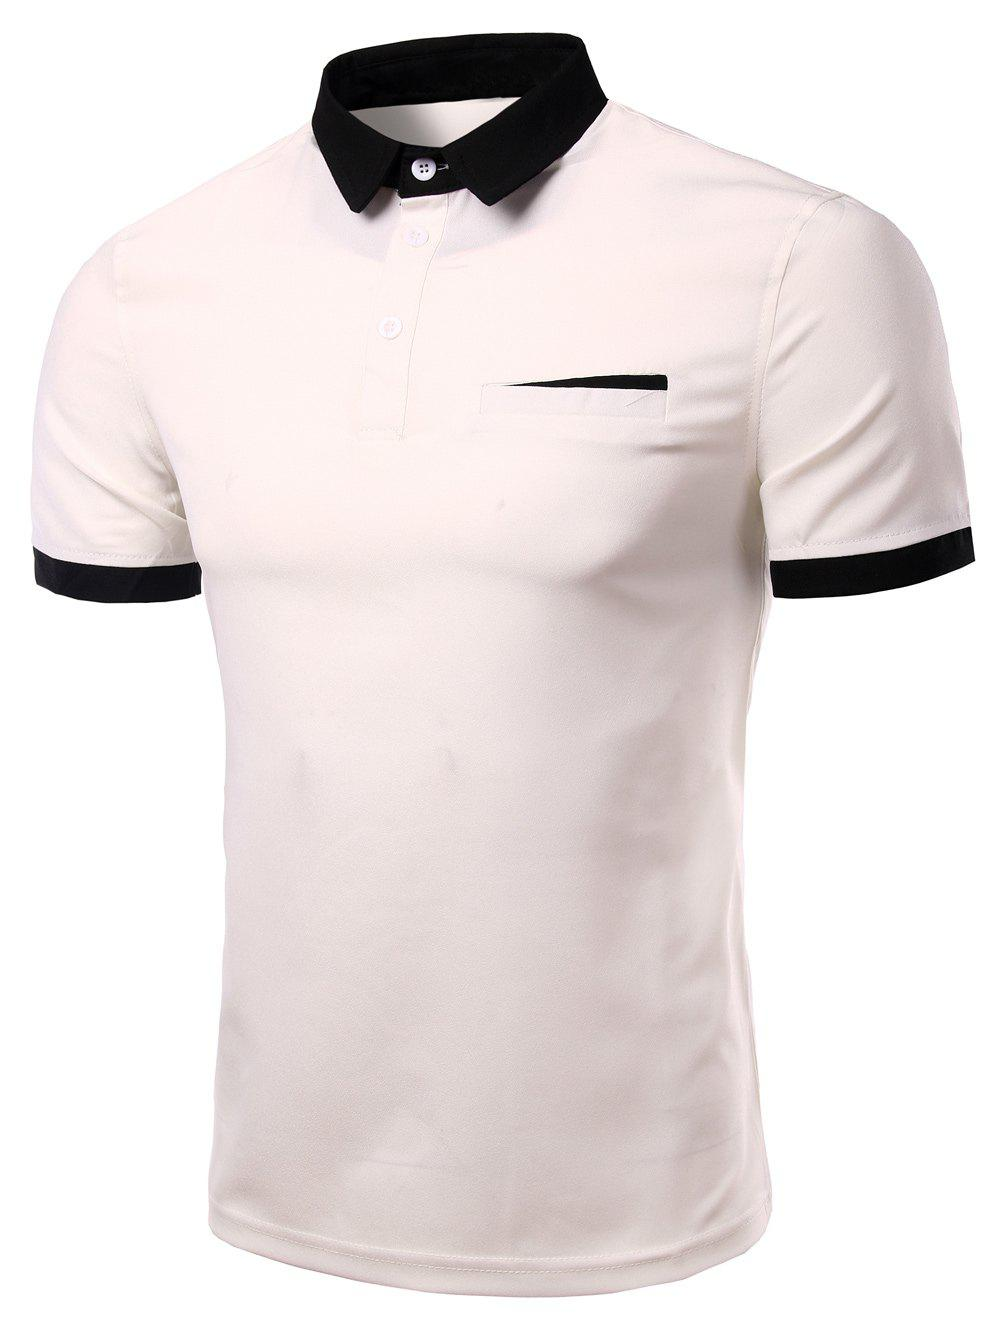 Men's Fashion Turn-down Collar Solid Color Short Sleeves Polo T-Shirt - WHITE XL